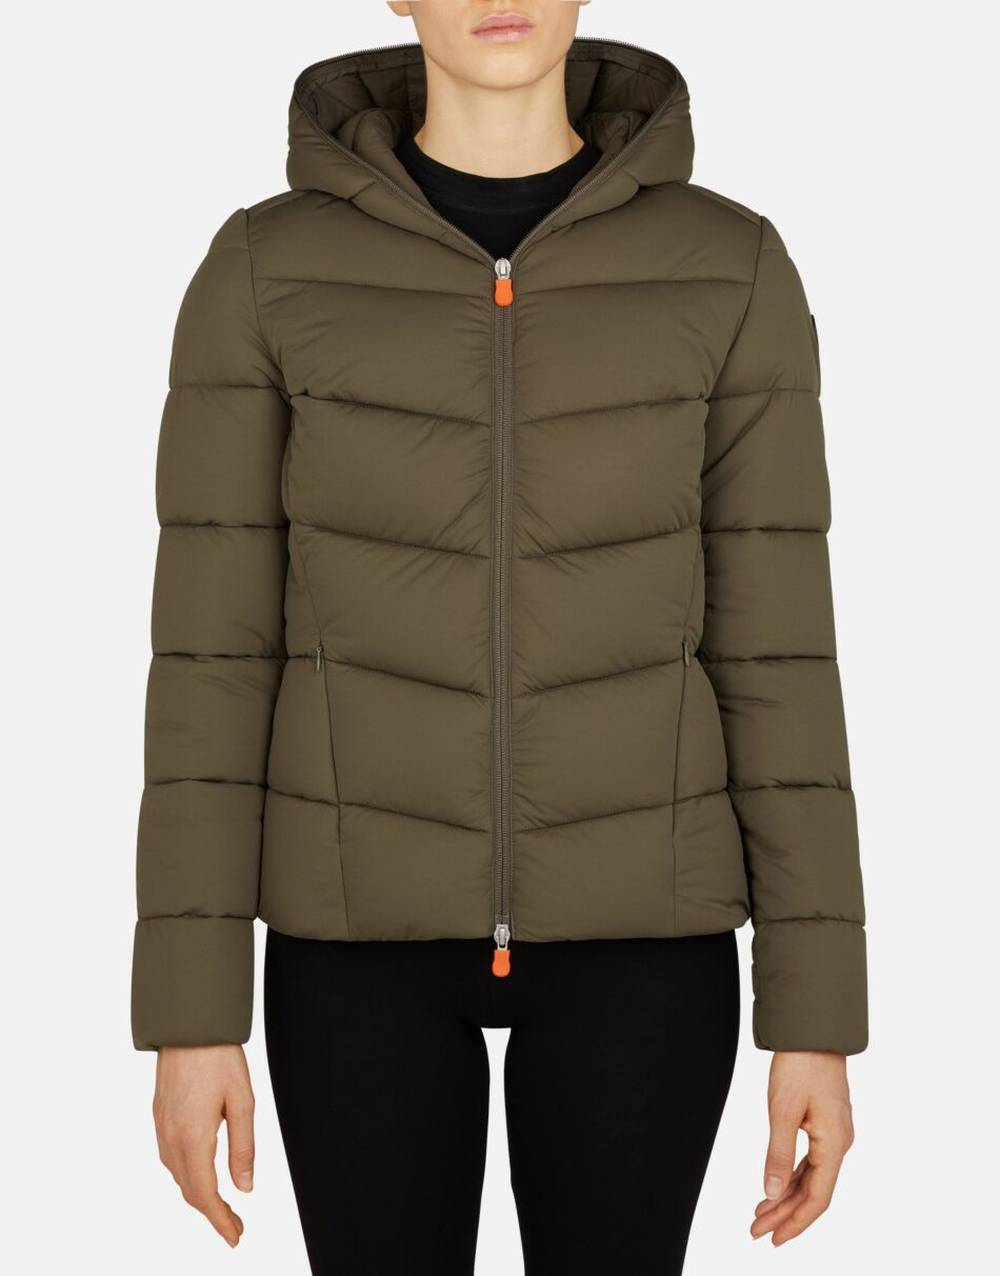 save the duck affordable sustainable puffer jacket